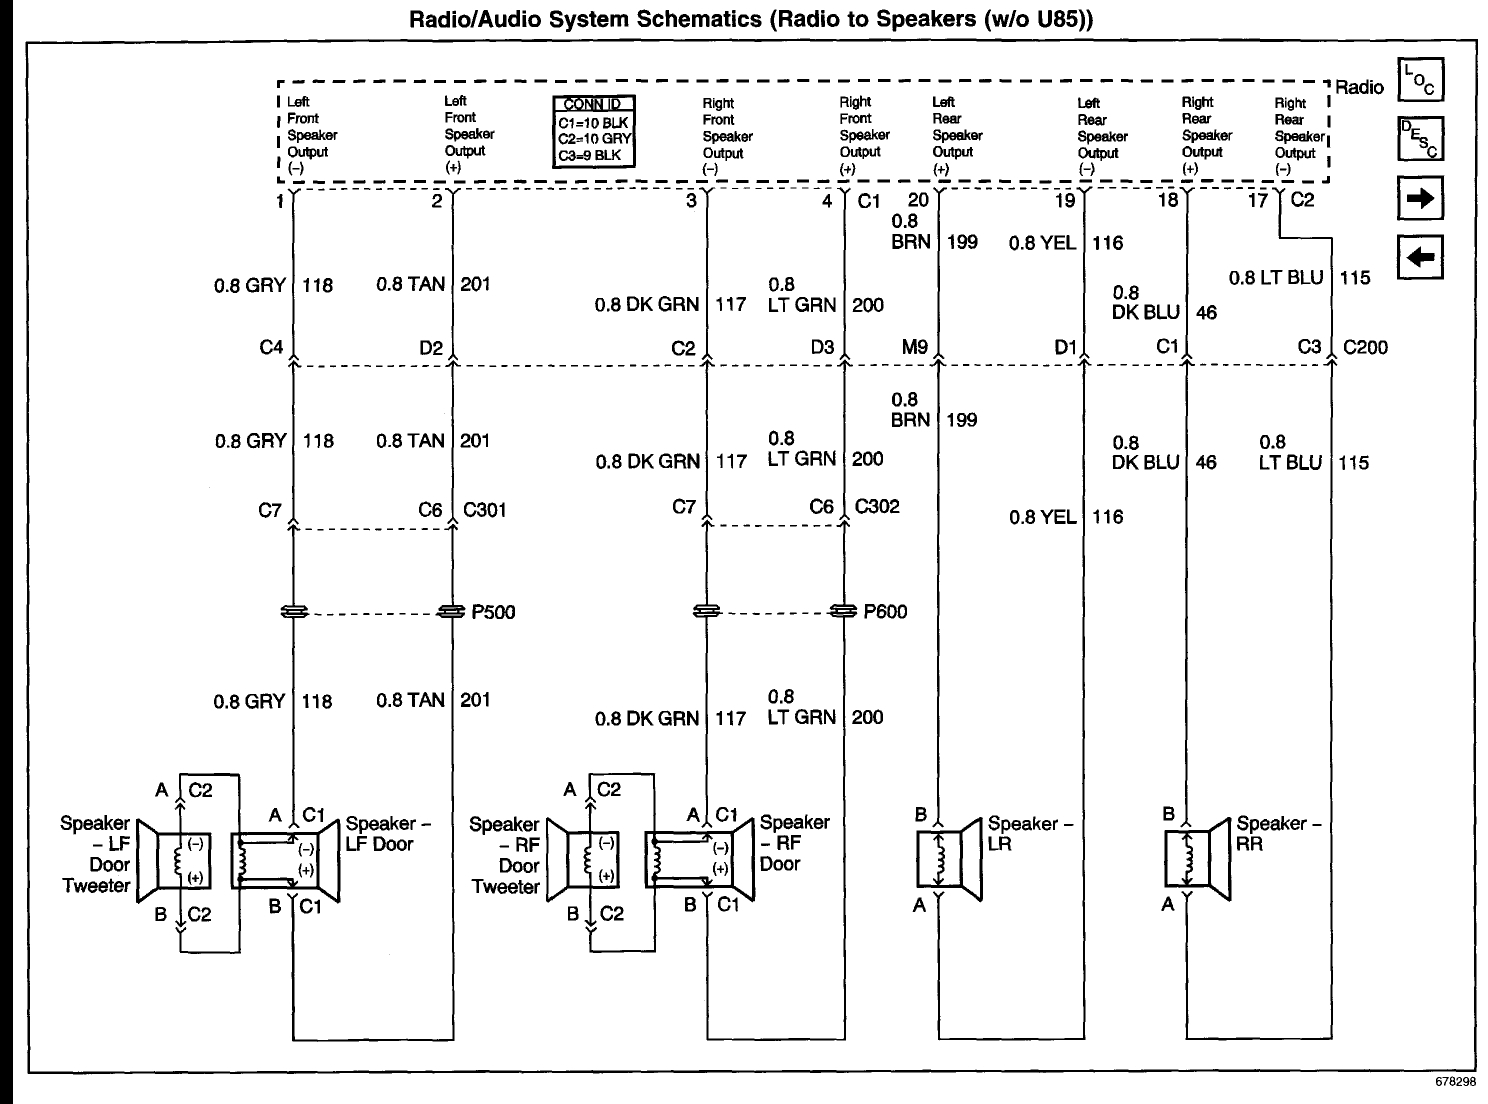 delco stereo wiring diagram Download-Delco Stereo Wiring Diagram 1989 F150 Radio Wiring Diagram Fresh New ford F150 Radio Wiring 6-n